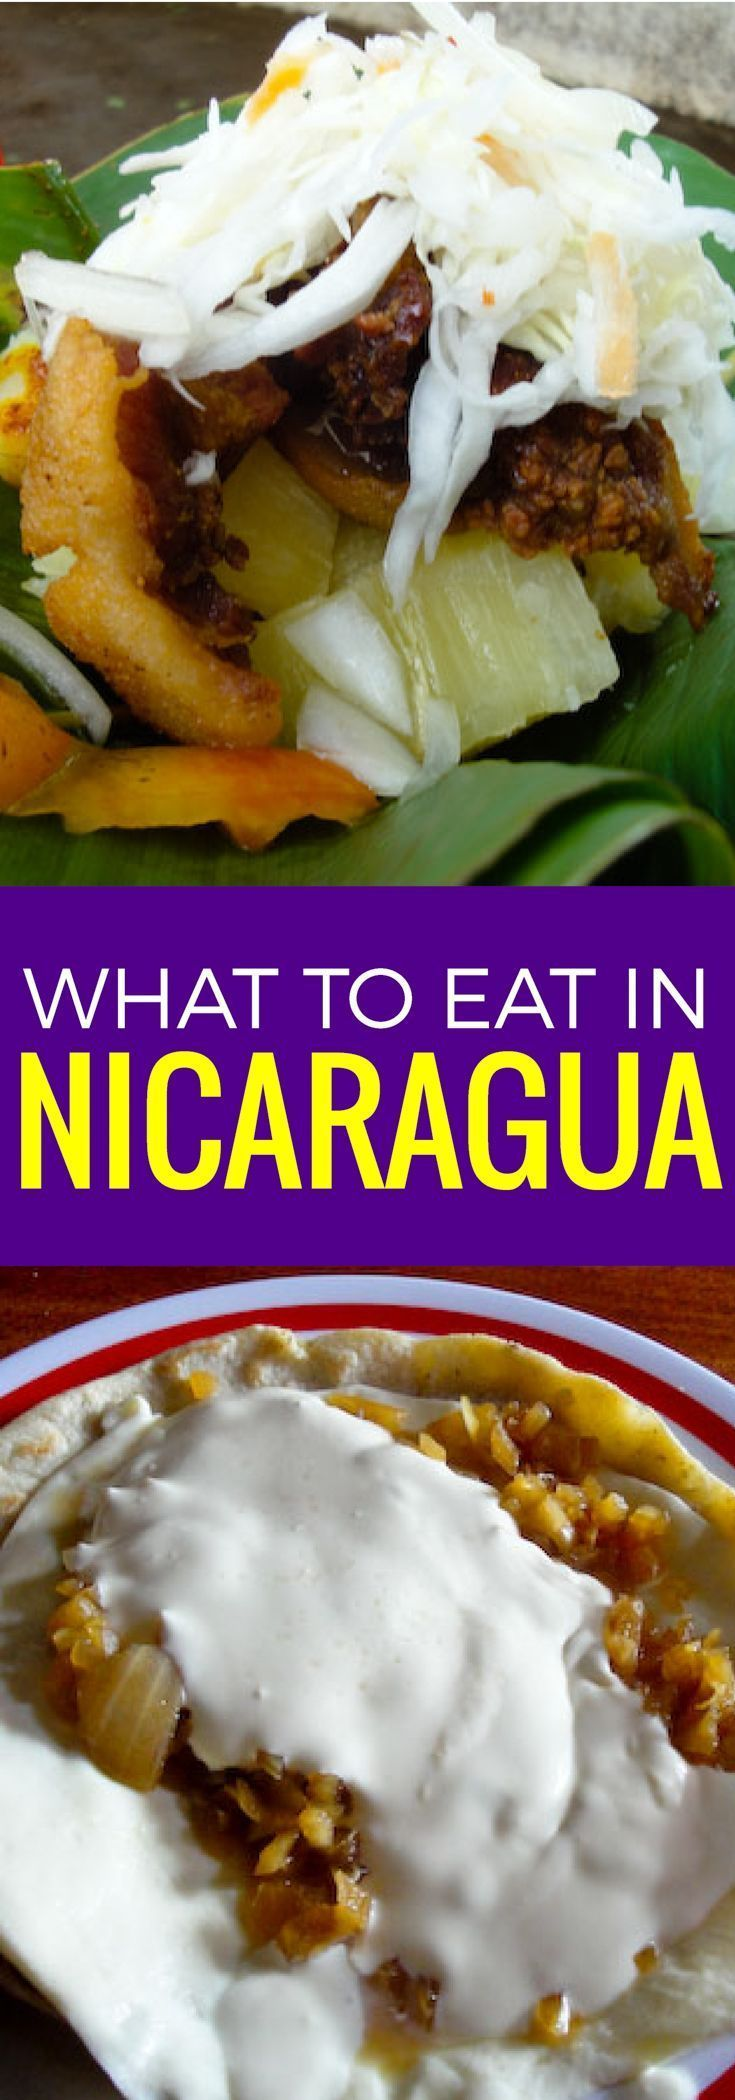 ln Nicaragua food is diverse and delicious, don't leave the country without trying these five dishes